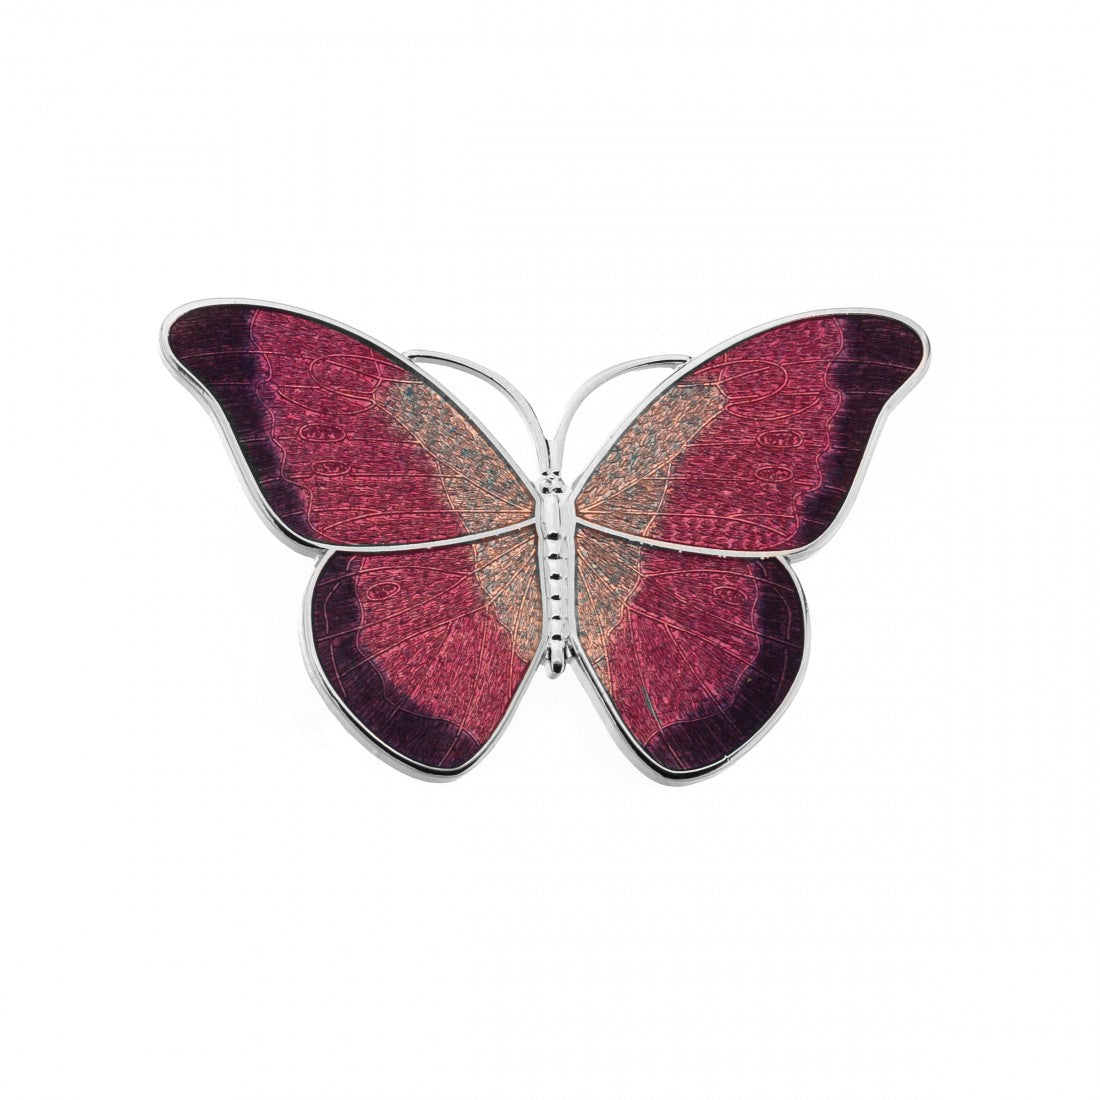 Butterfly Broach - Red